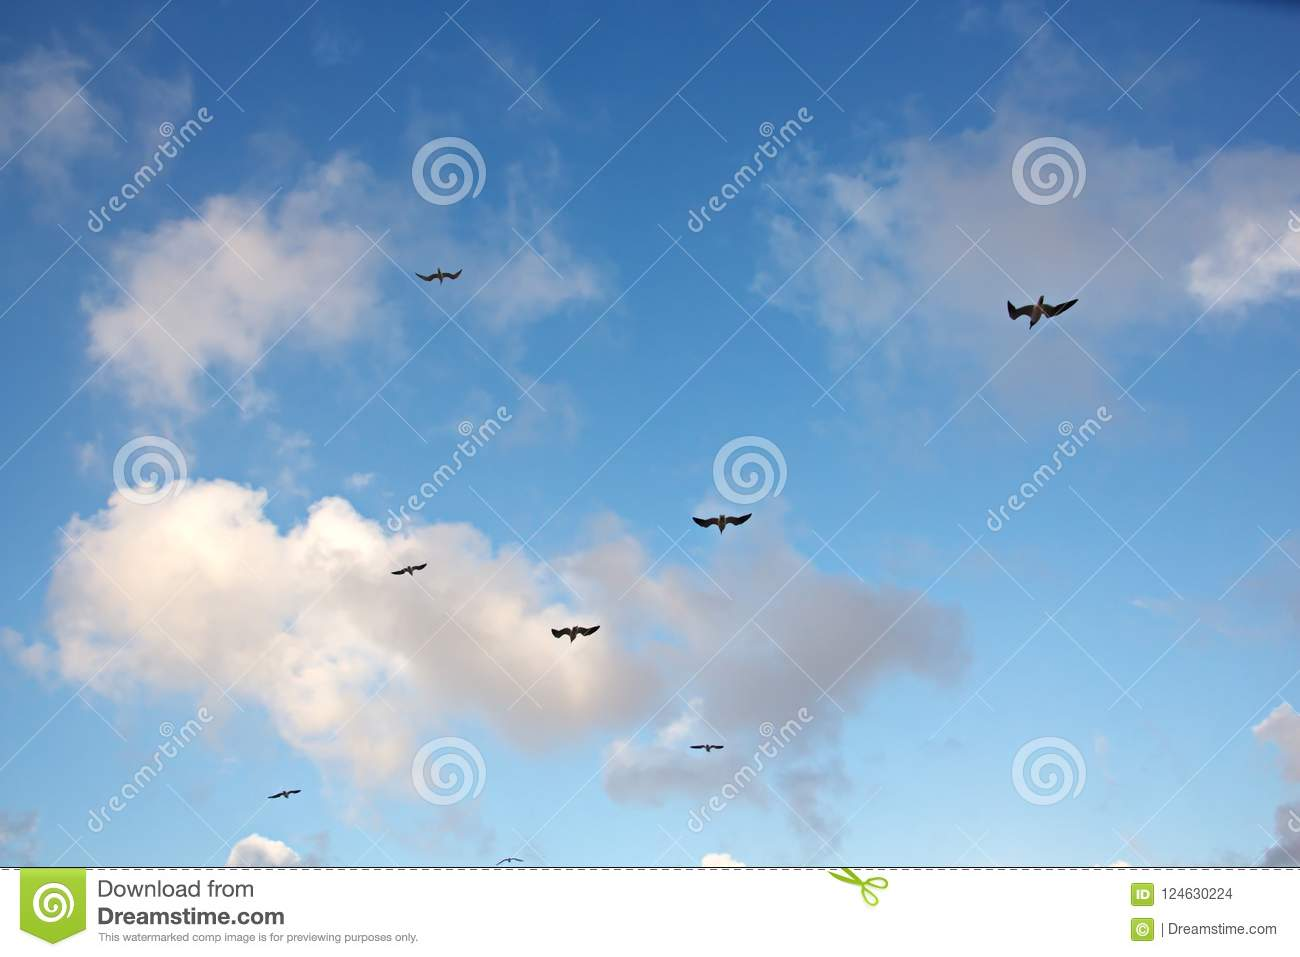 Seagulls and birds hovering in the sky against a background of white and colorful clouds and a coastline.